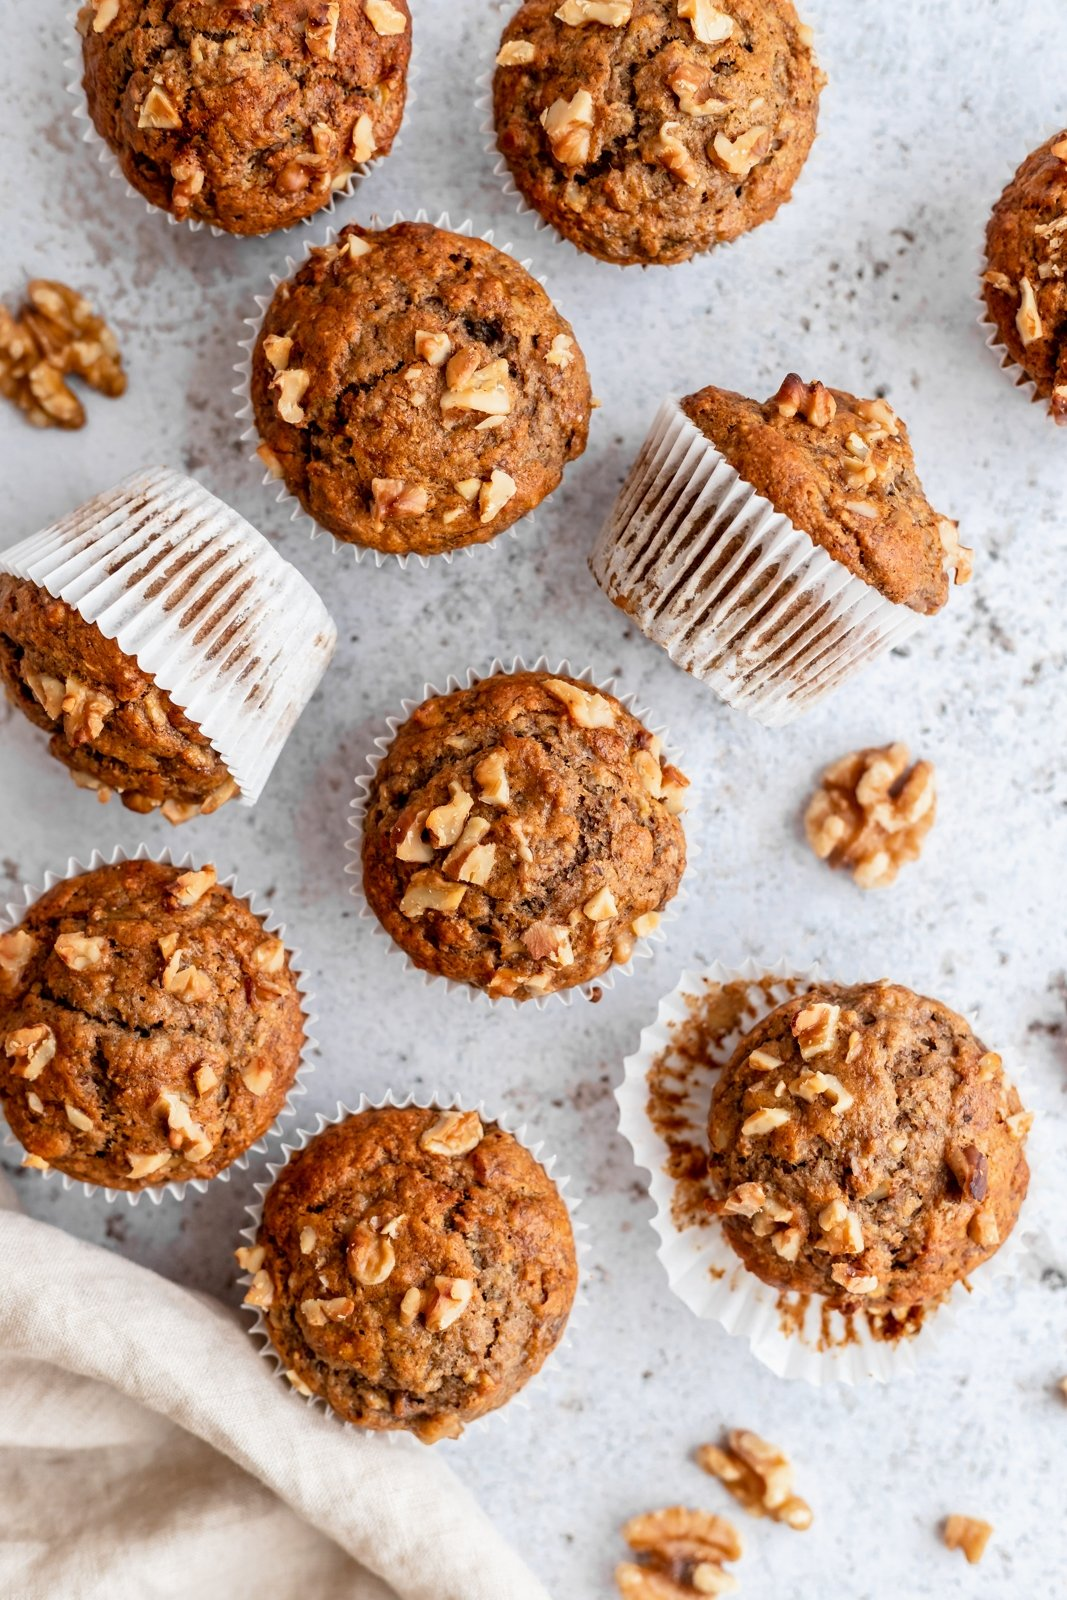 healthy banana muffins on a board with walnuts